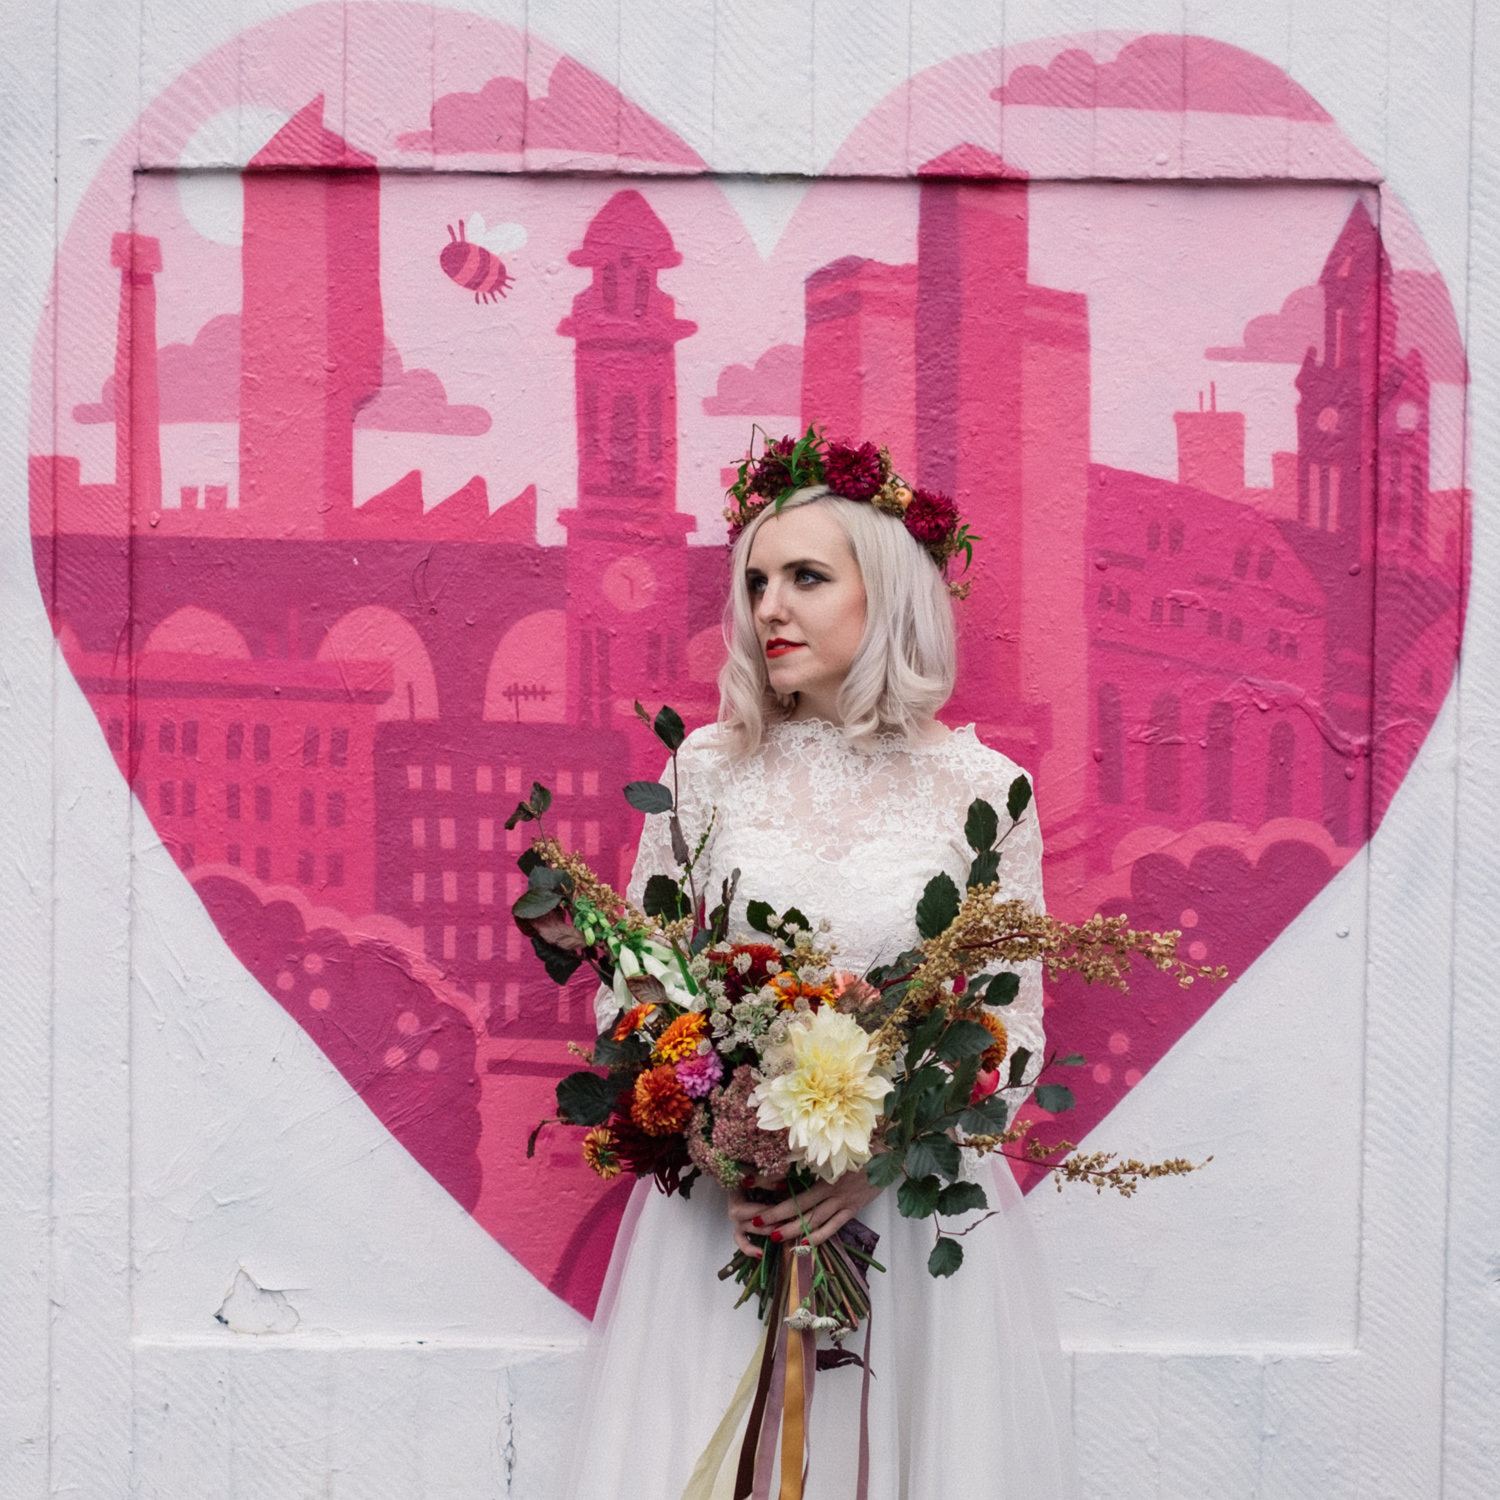 Martha is stood outside the outhouse in Manchester Northern Quarter, it is decorated with a pink heart and the sky line of Manchester